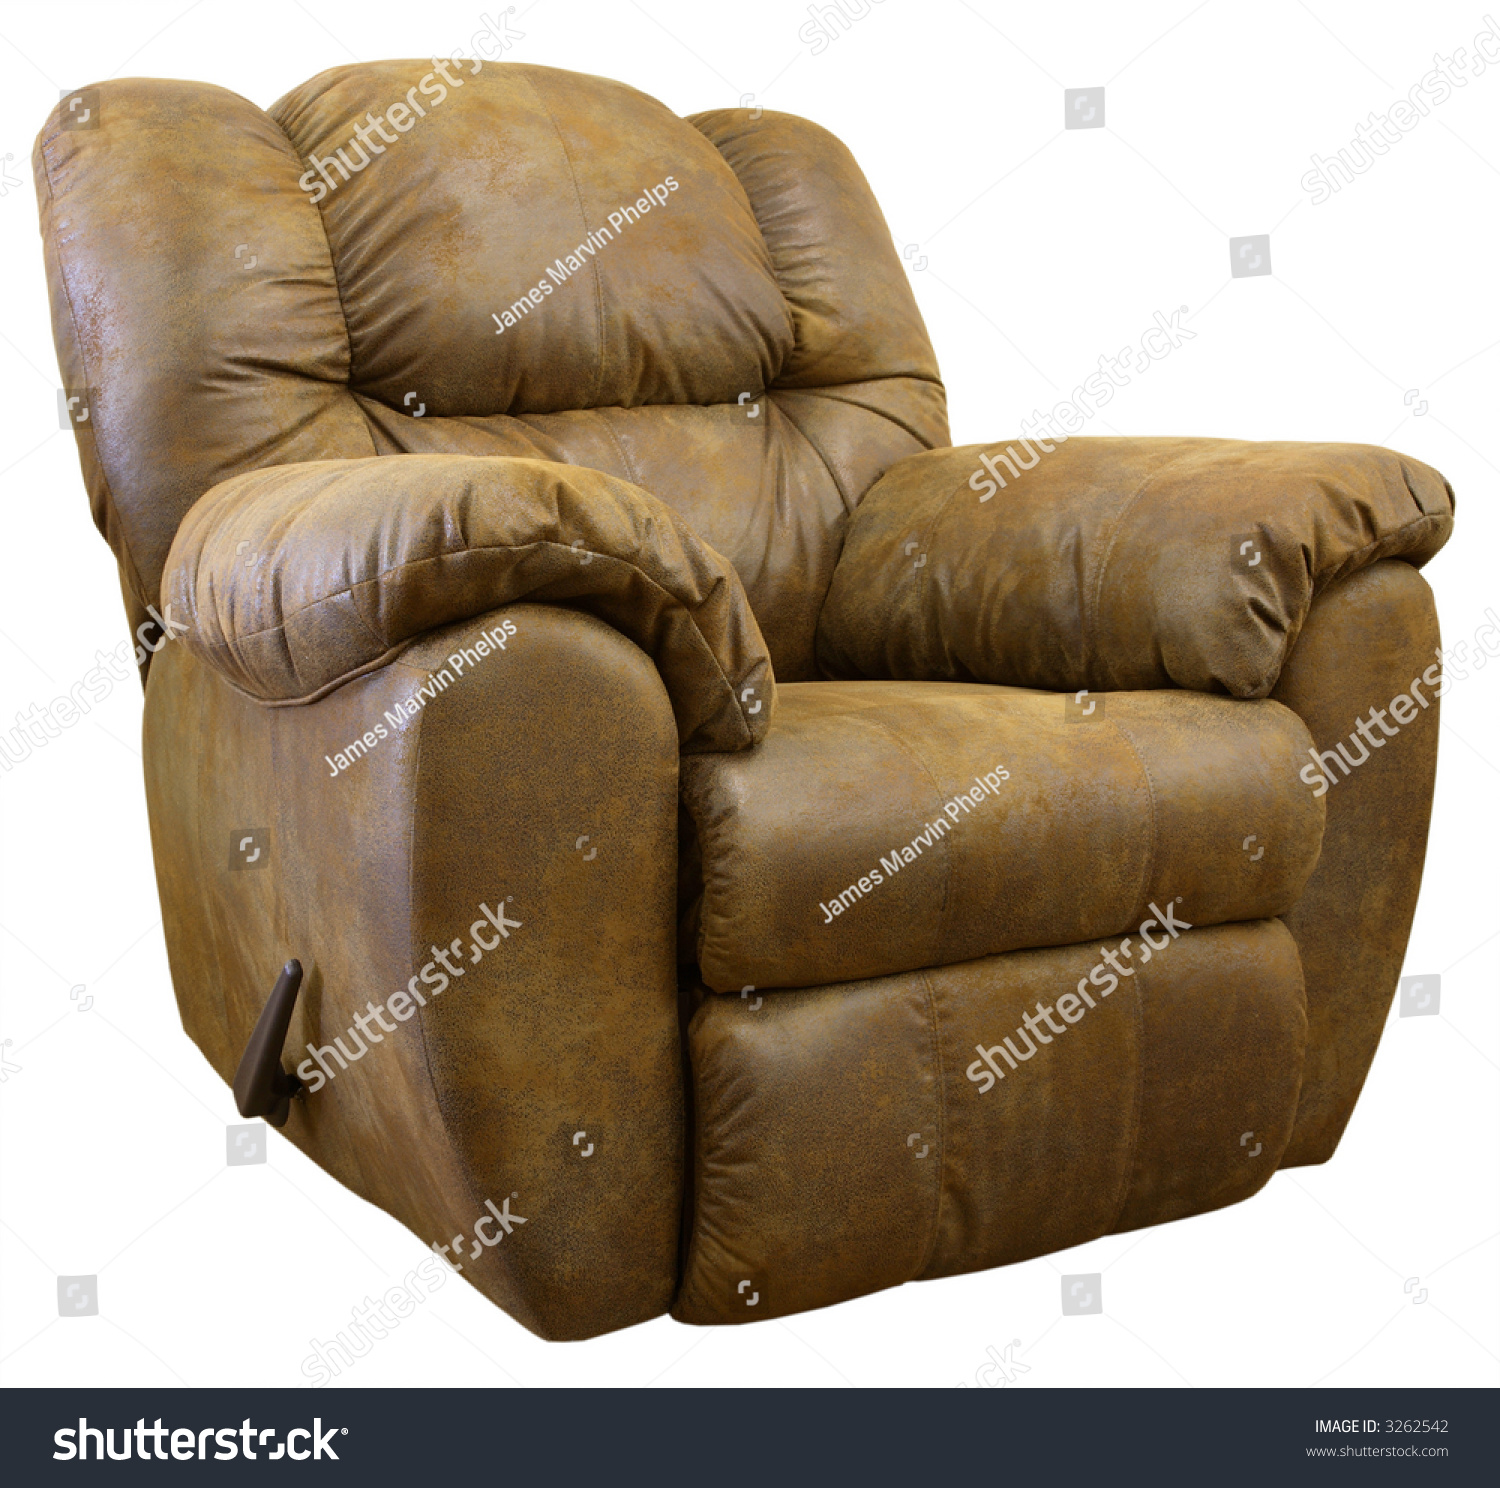 Brown Micro Suede Rocker Recliner Chair  sc 1 st  Shutterstock : brown suede recliner - islam-shia.org